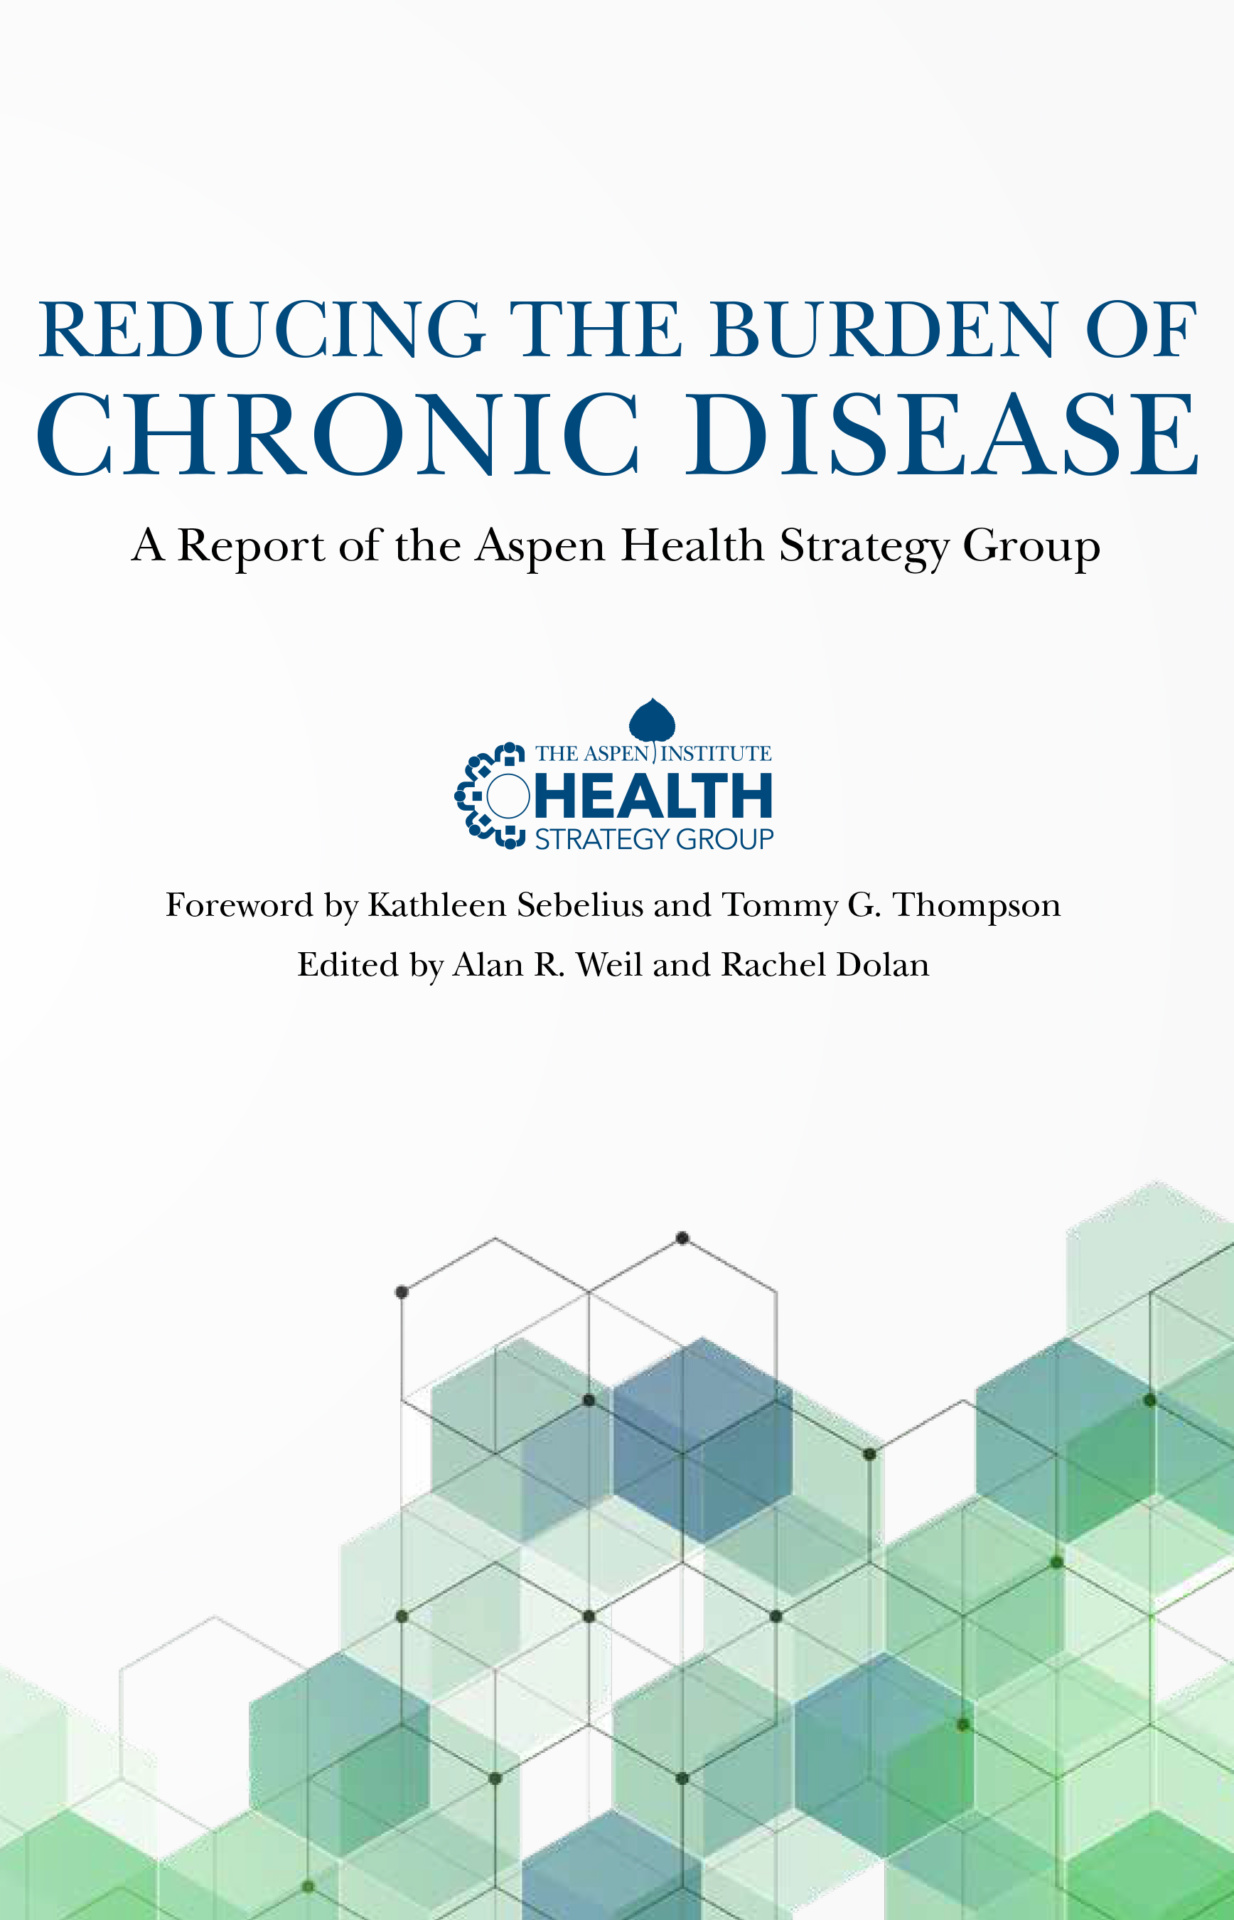 Reducing the Burden of Chronic Disease